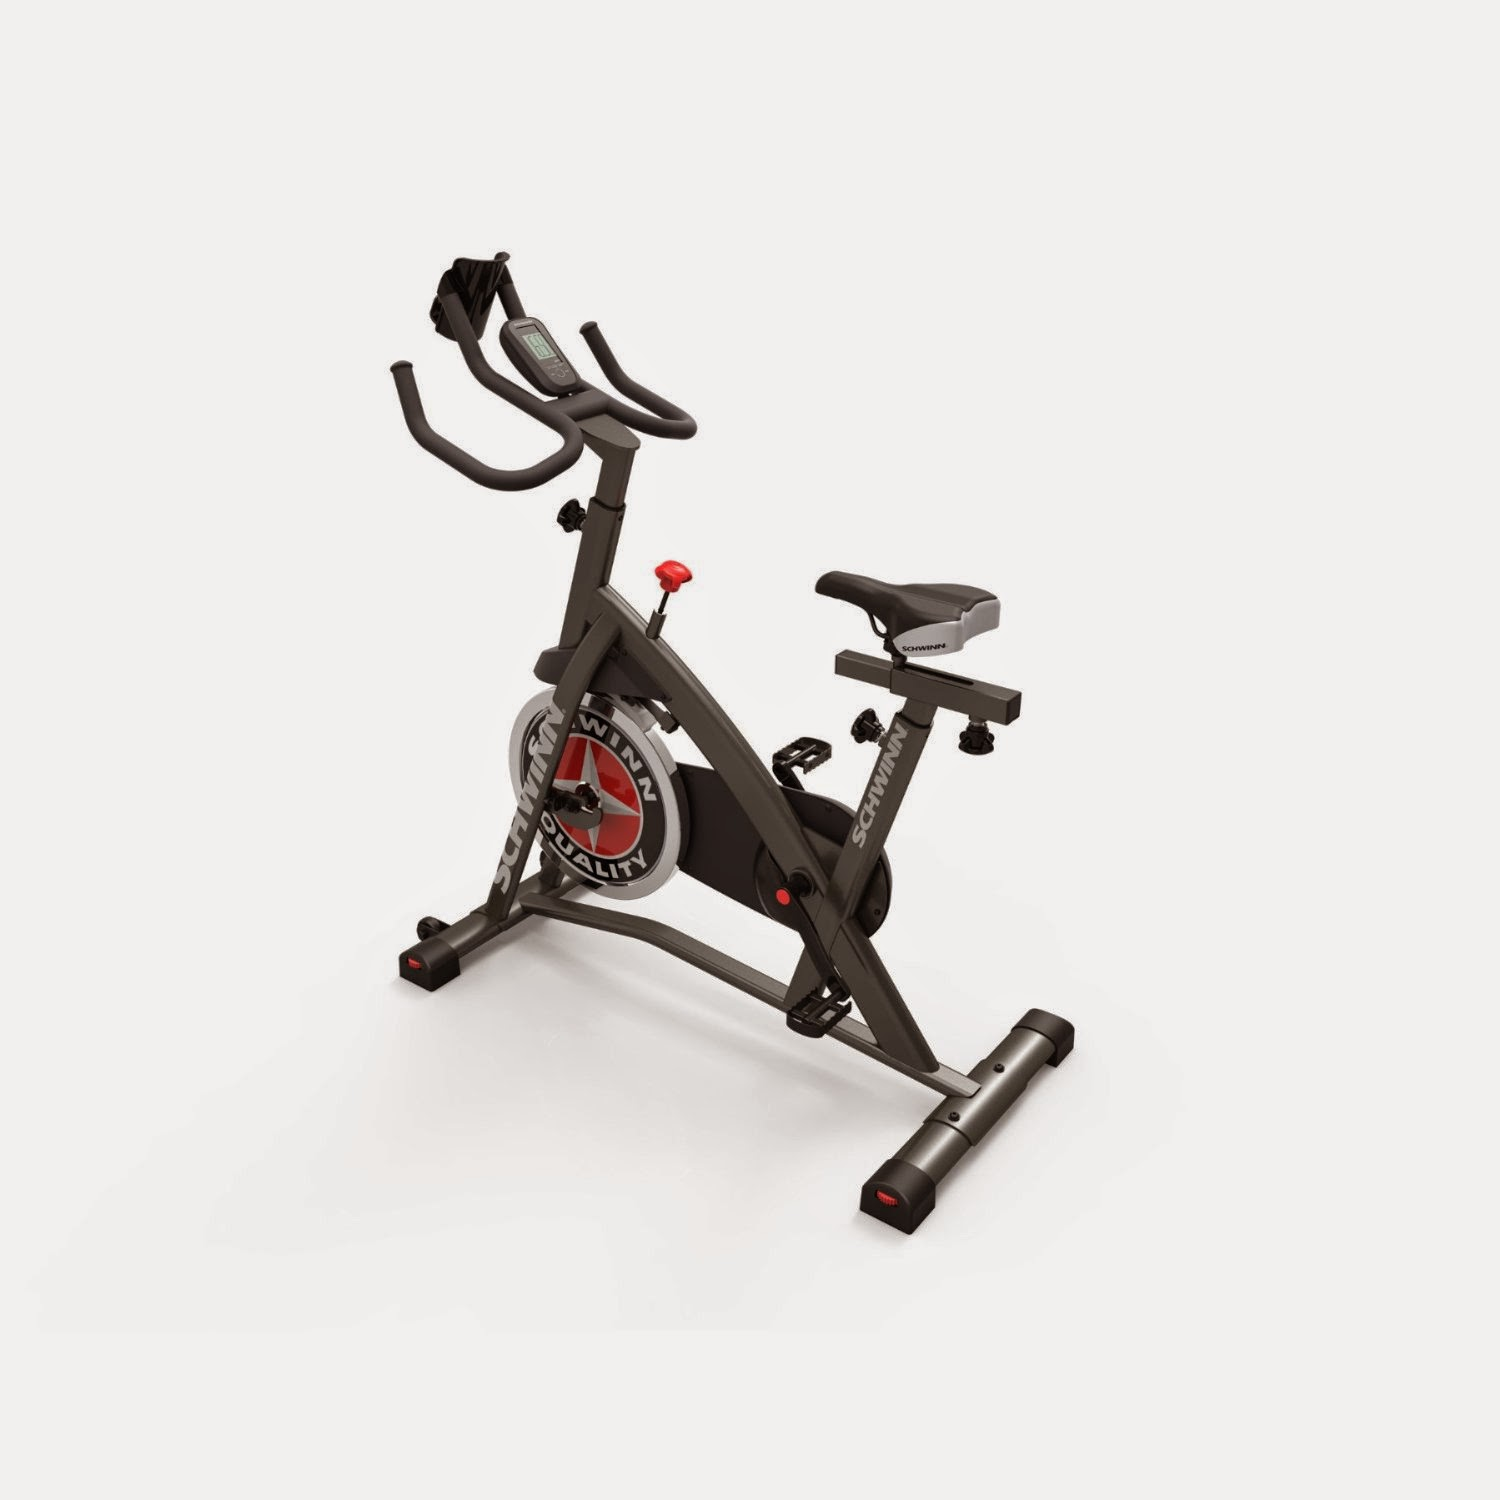 pro fitness exercise bike instruction manual